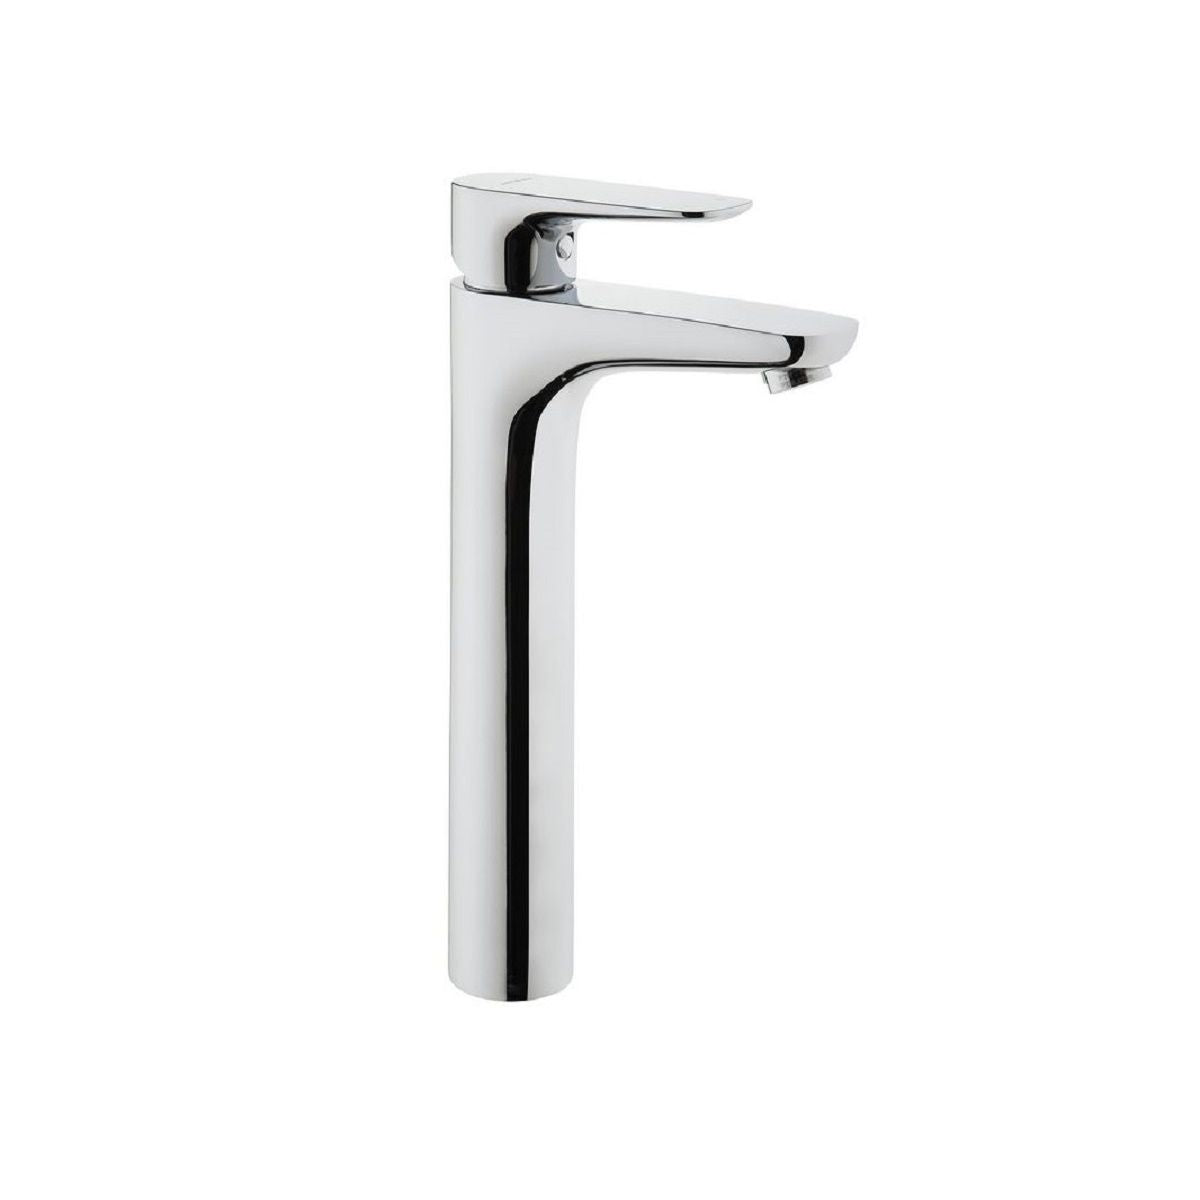 X-Line Tall Basin Mixer - blueskybathrooms